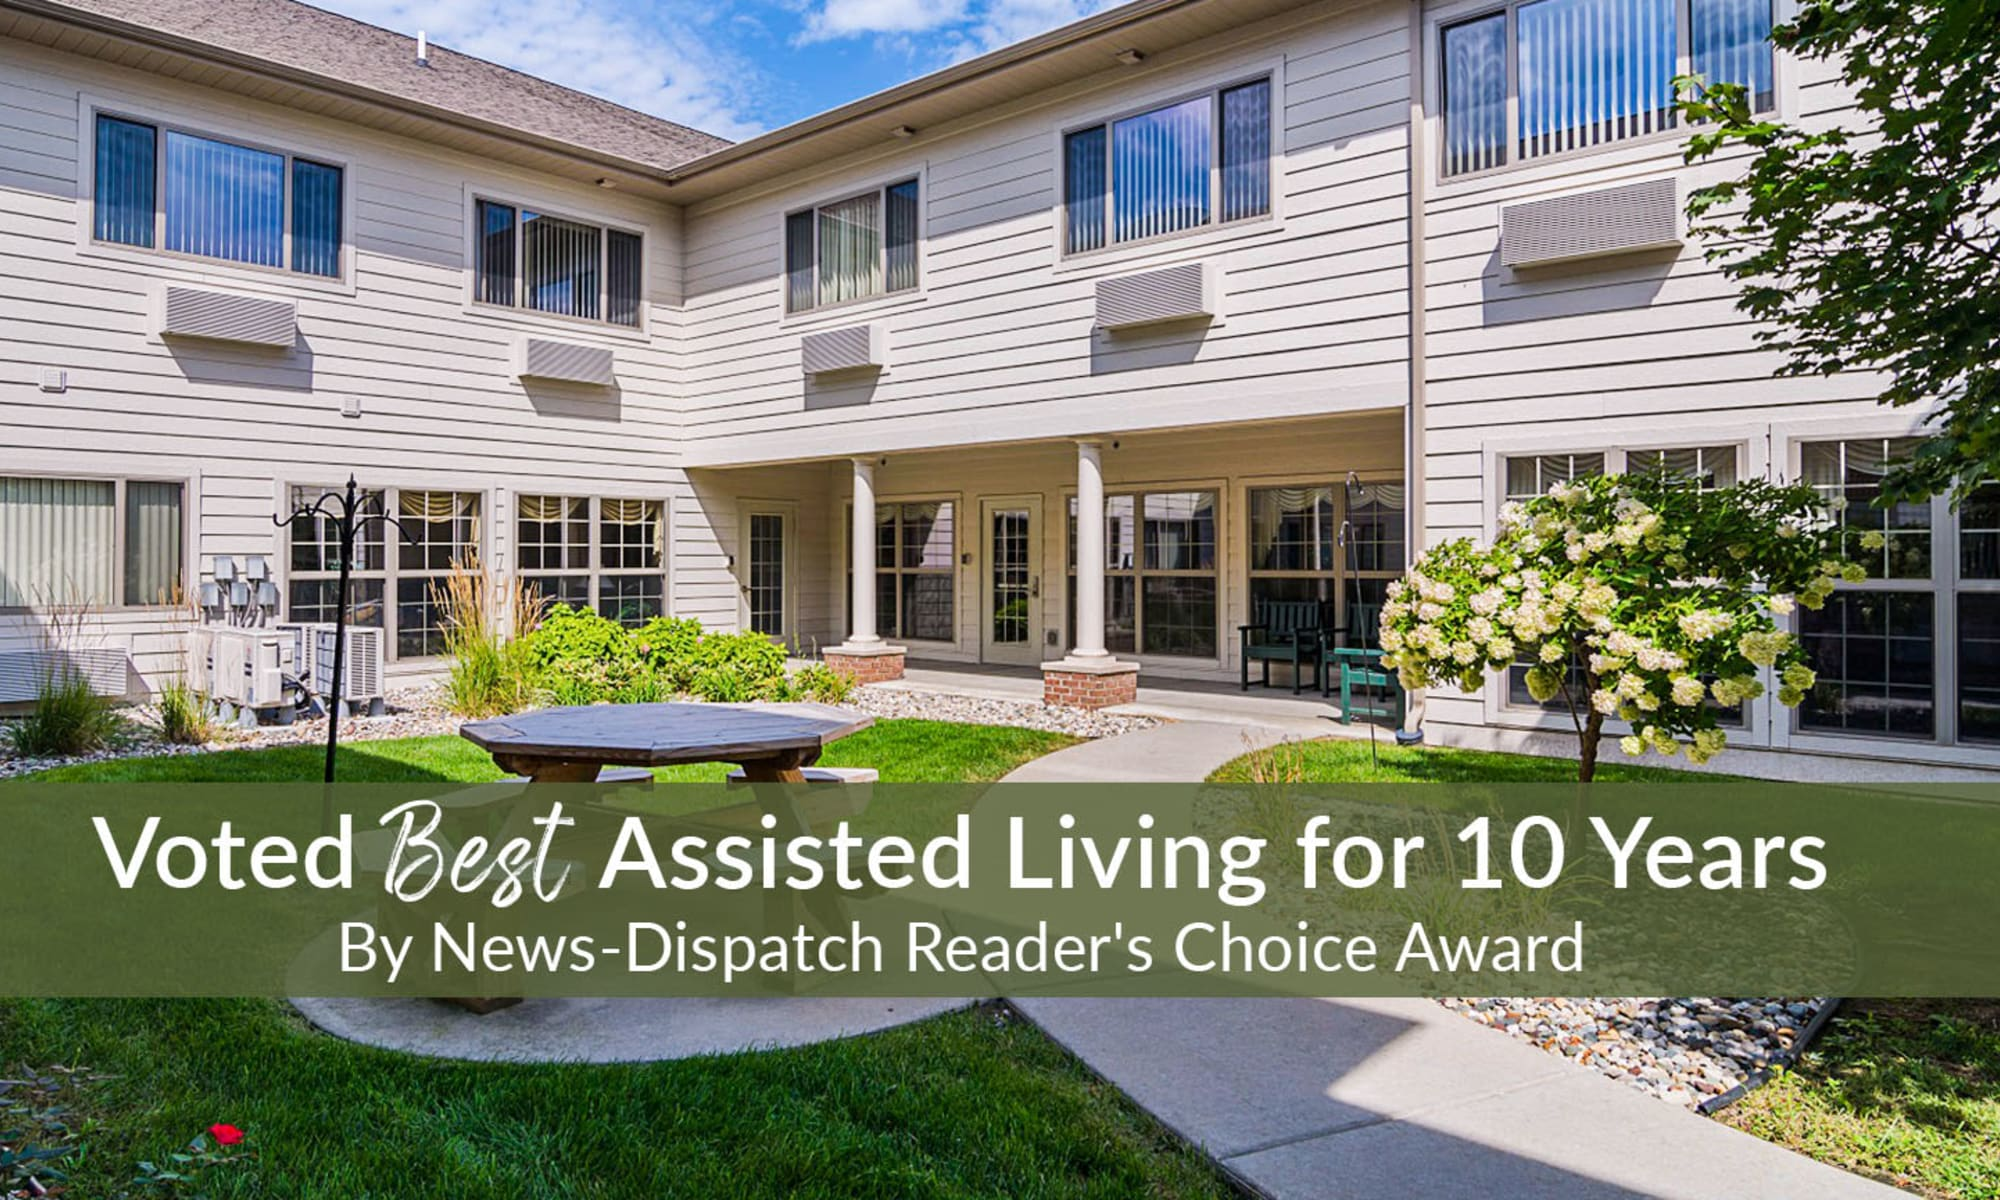 Michigan City senior living has amazing care options